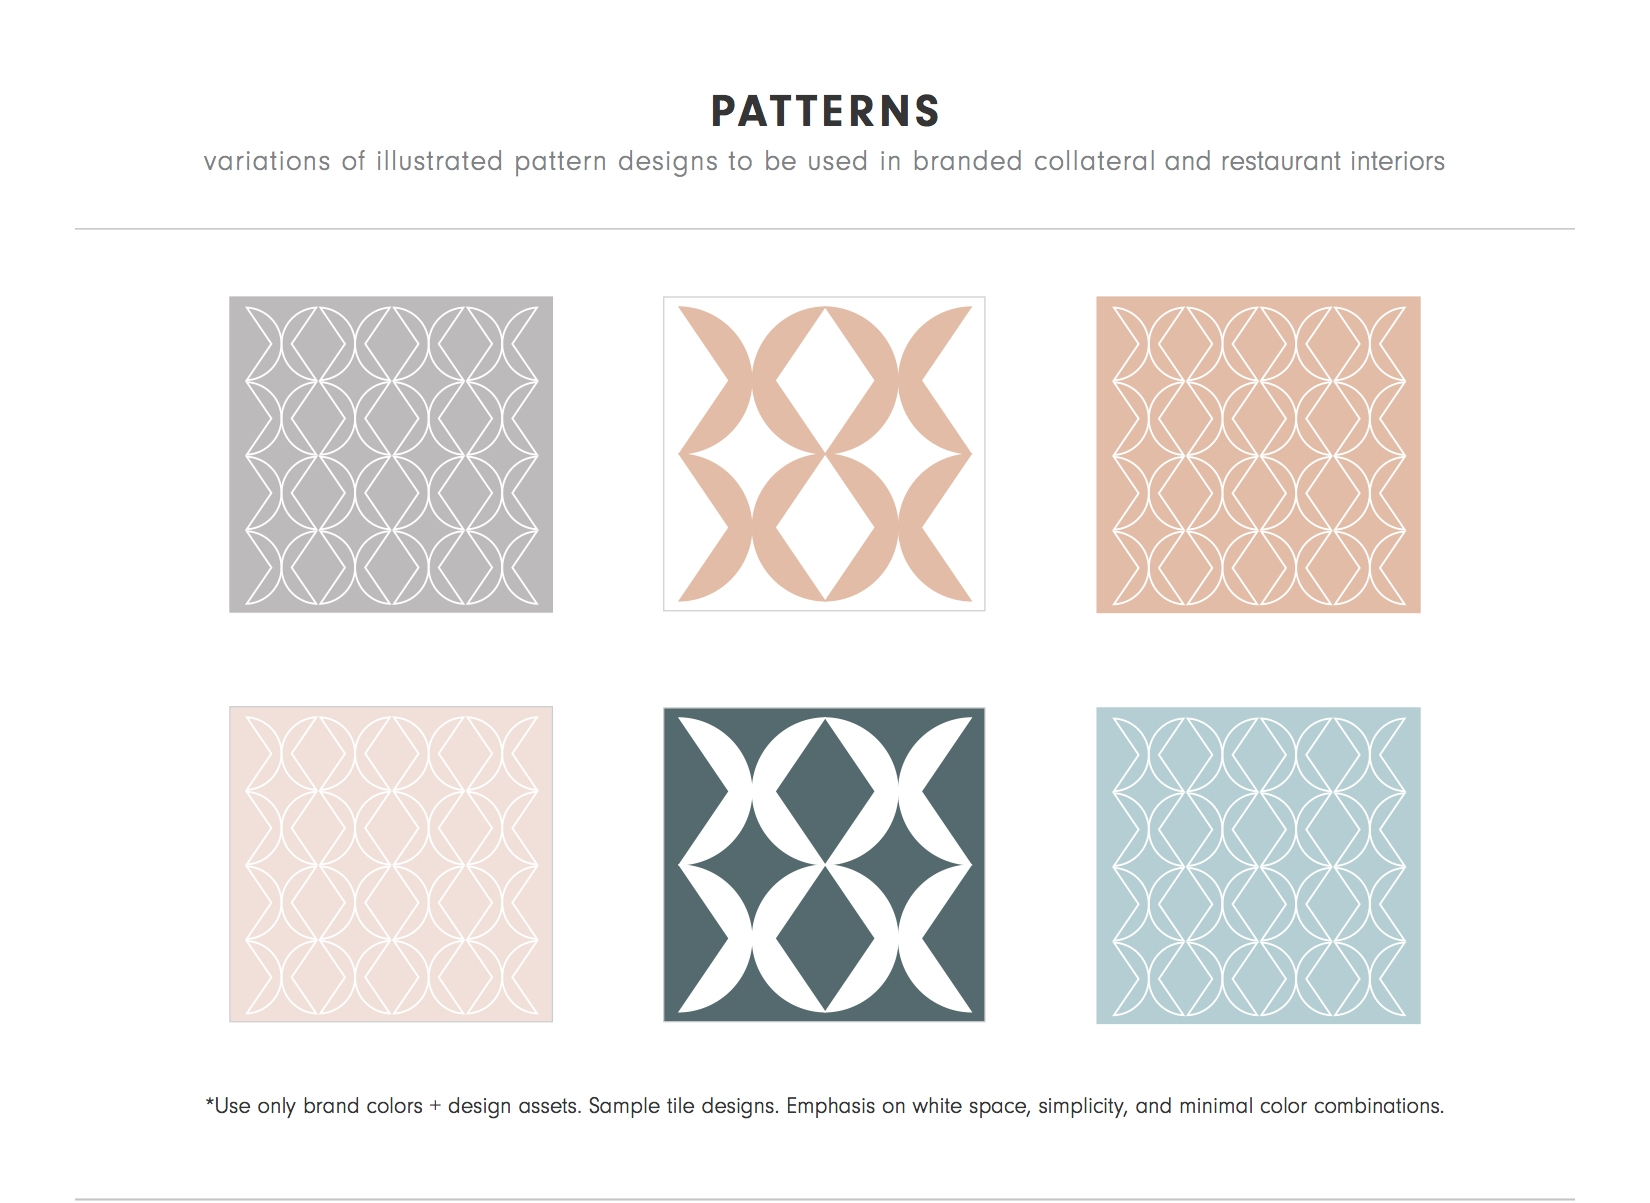 ANZO_Brand-Guidelines_FINAL patterns.jpg